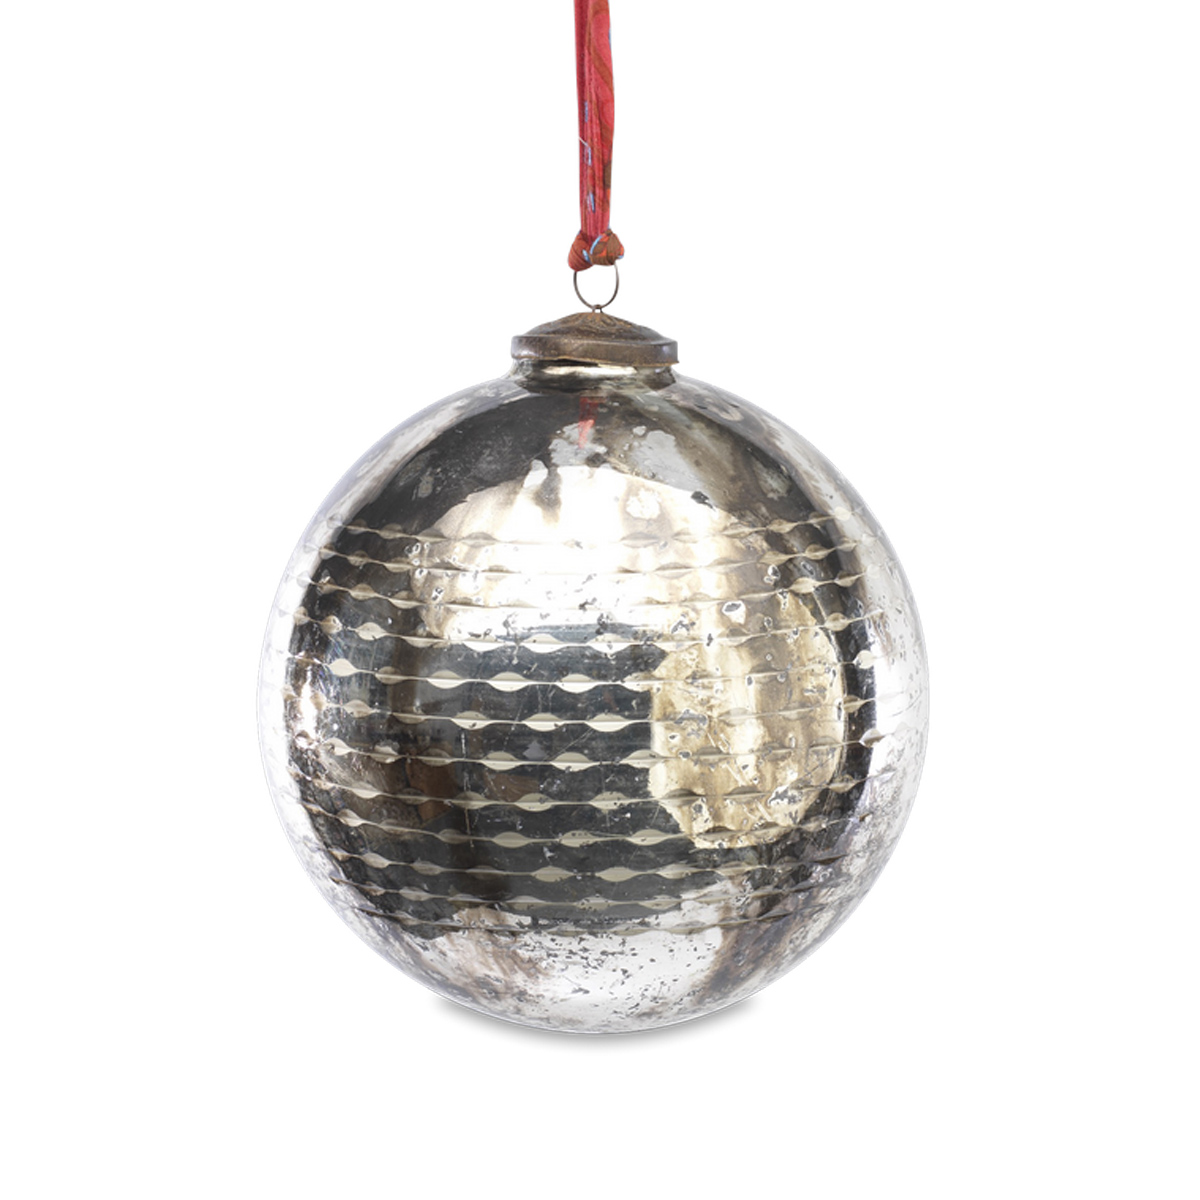 Giant-Tiko-Mercury-glass-christmas-bauble-nkuku